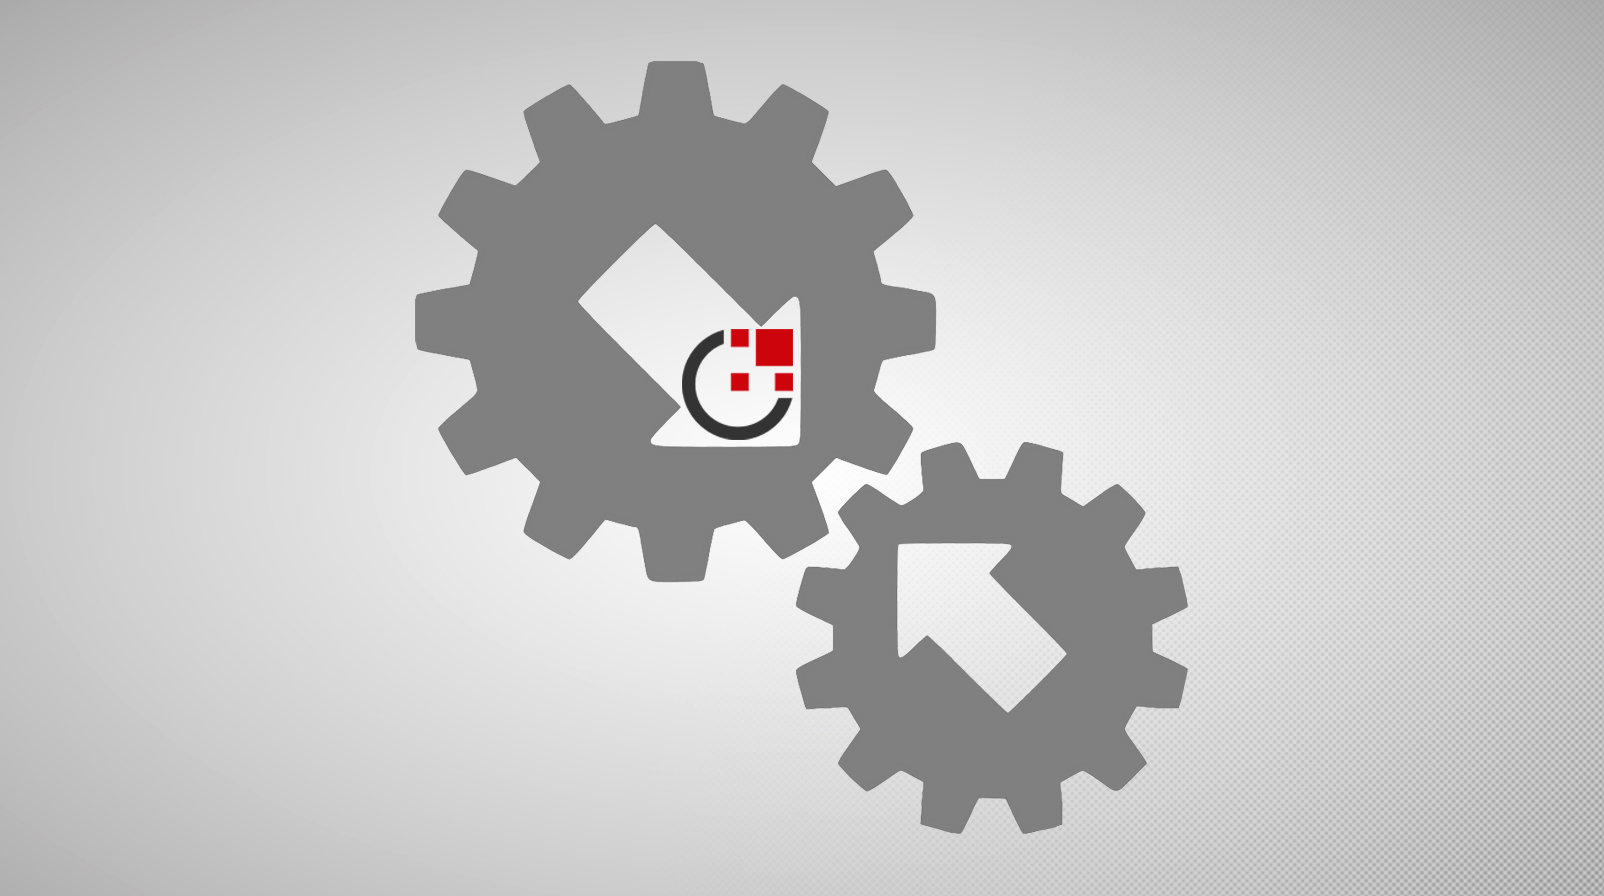 Integration with any system and application